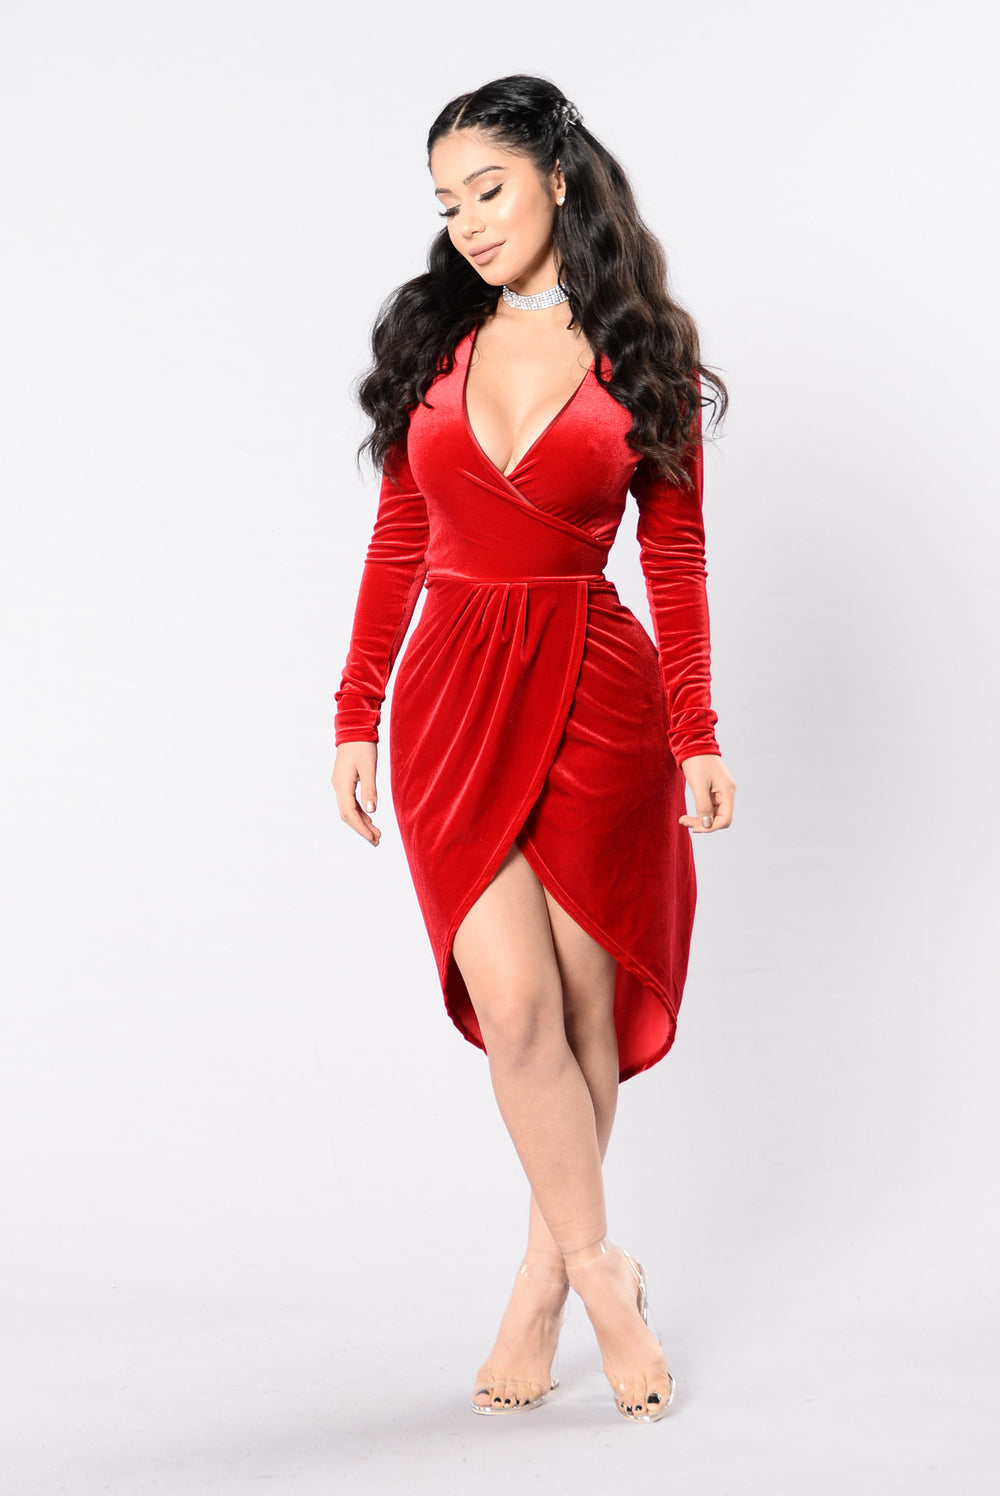 Down To Dance Dress - Red